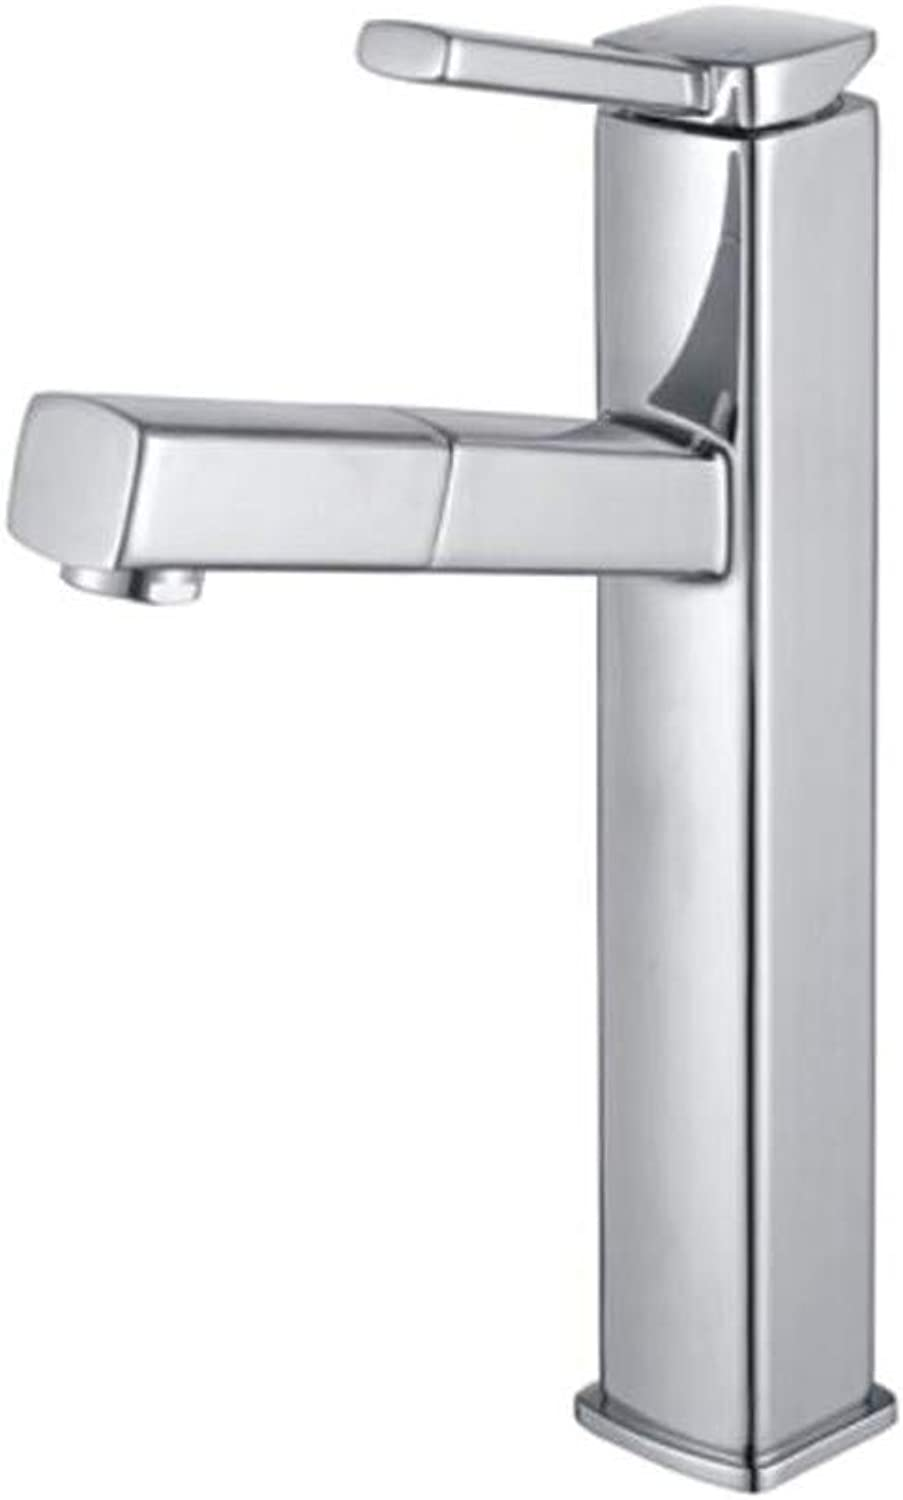 Taps Mixer?Swivel?Faucet Sink Draw-Type Basin Faucet Cold and Hot Washbasin Telescopic Faucet Bathroom Universal Table Washbasin Faucet